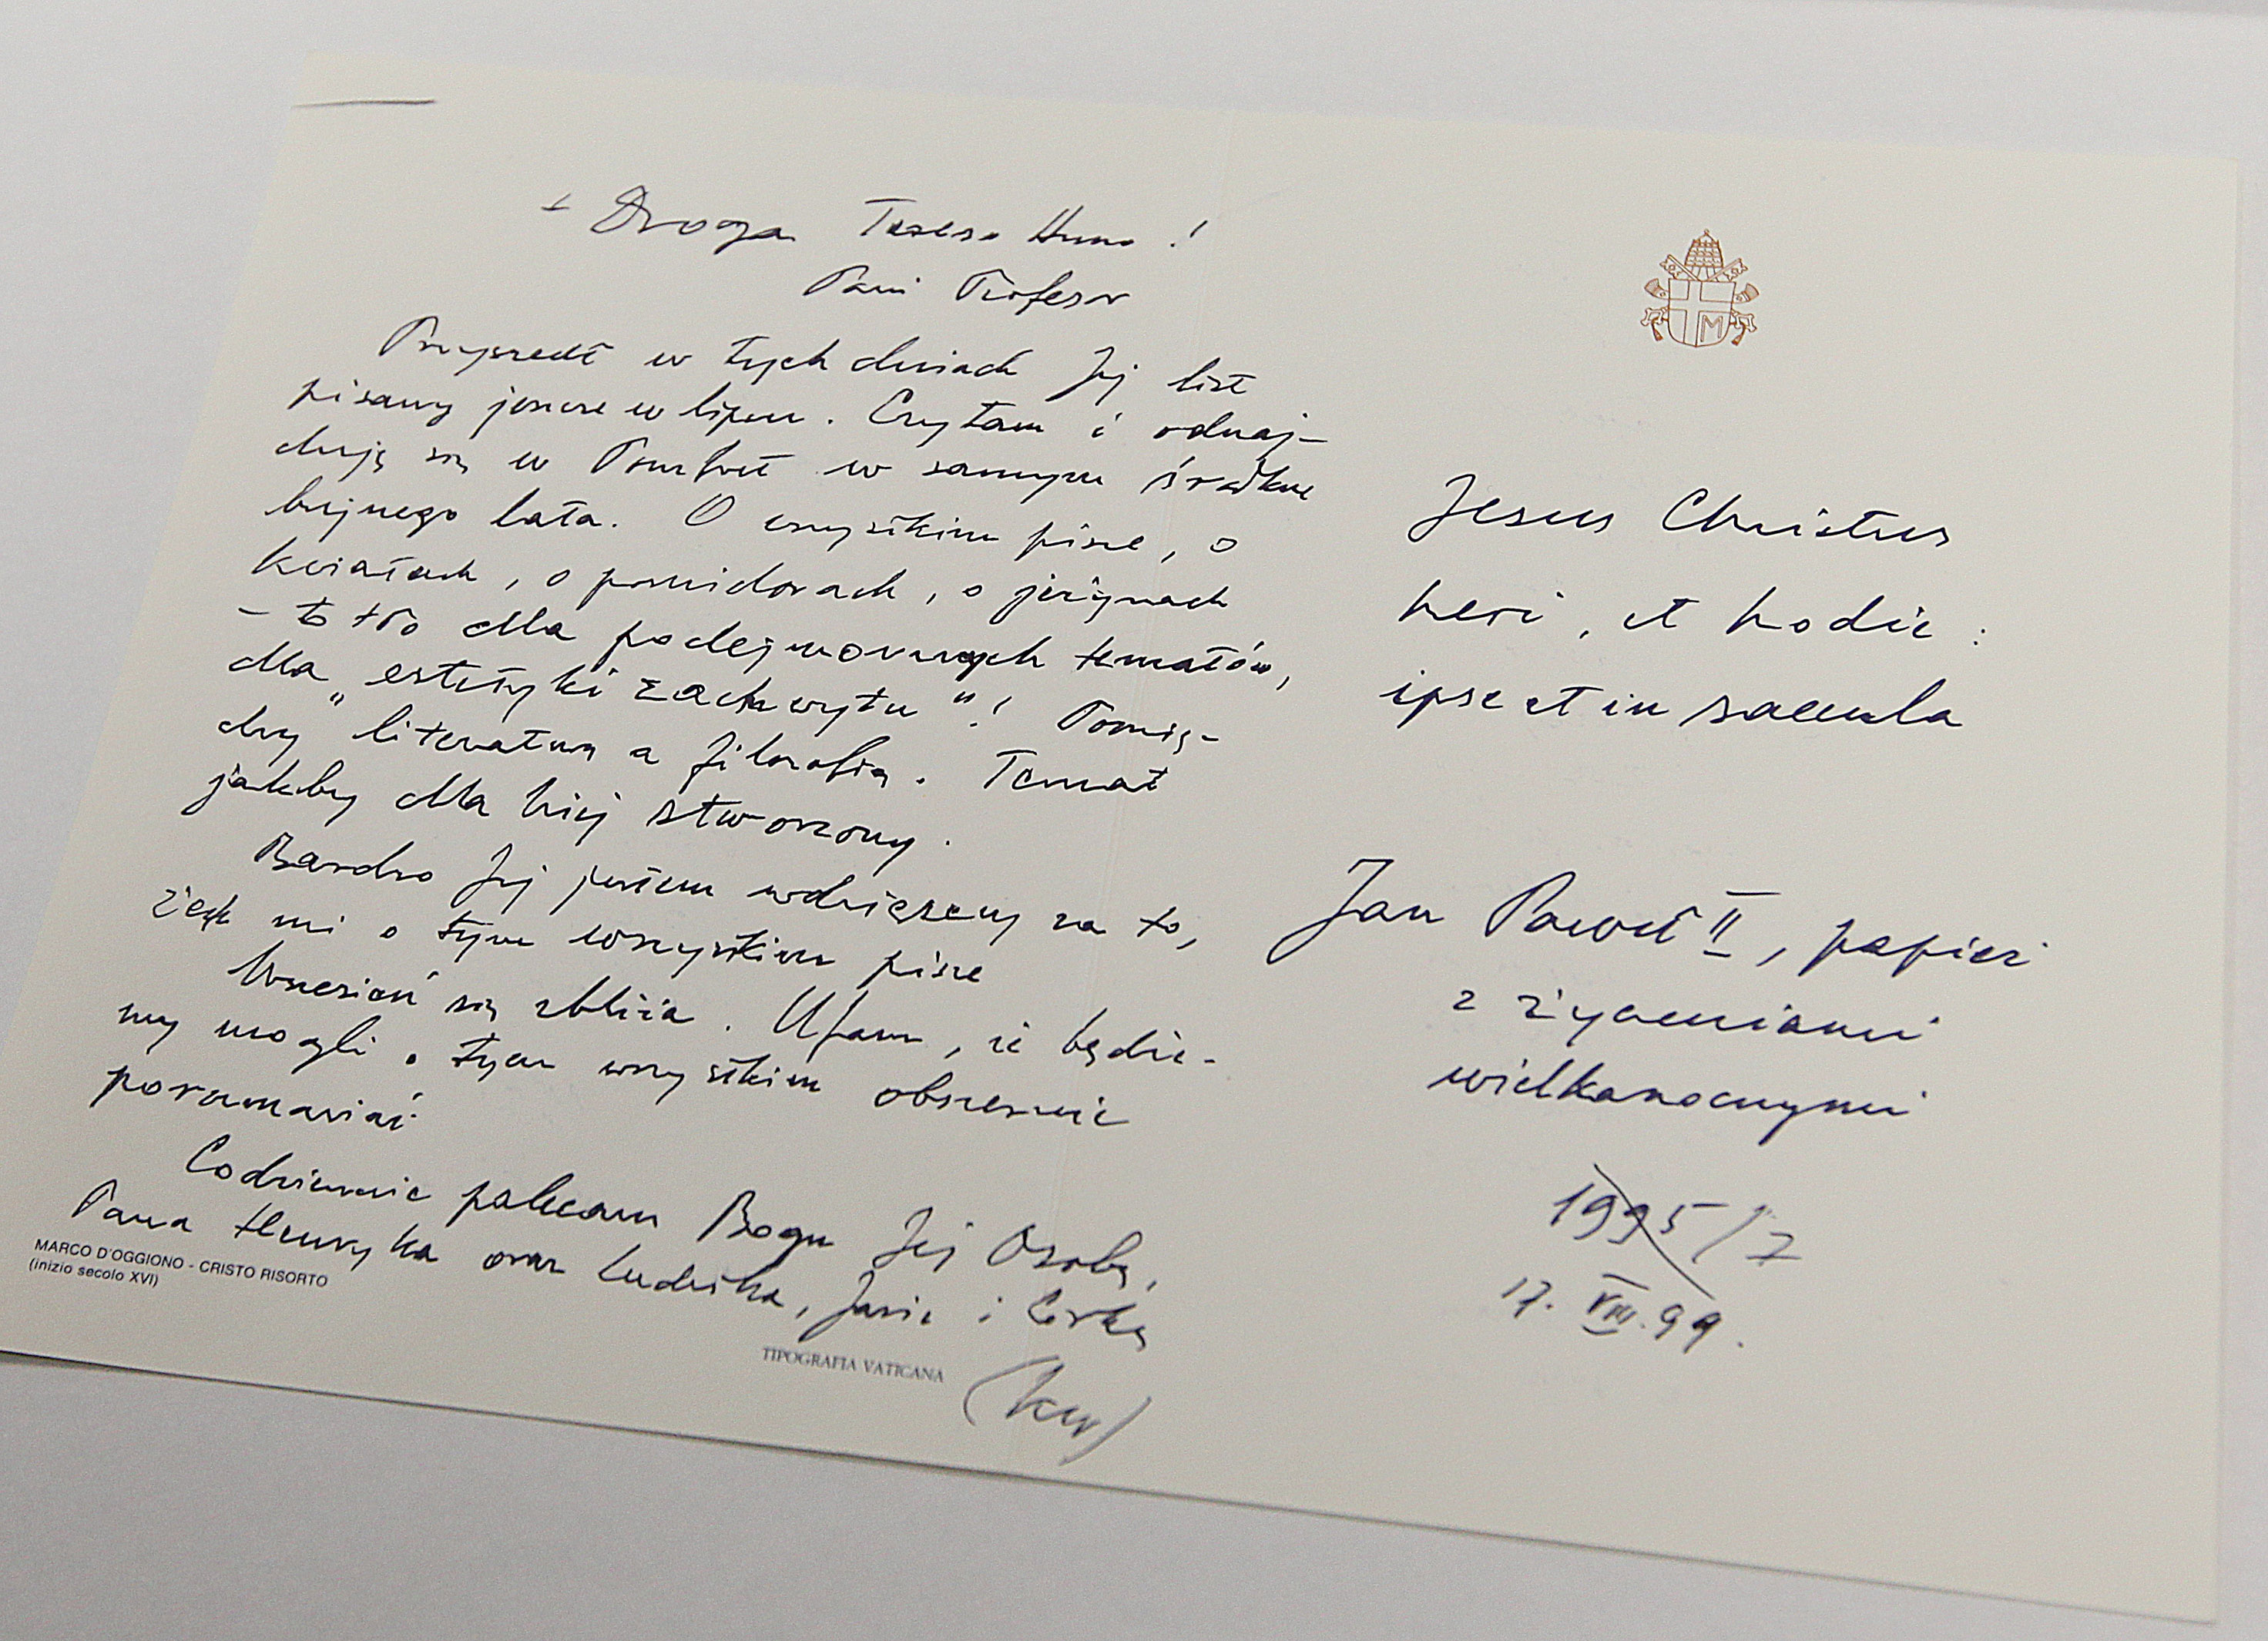 Letters between John Paul II and a woman Not so secret actually